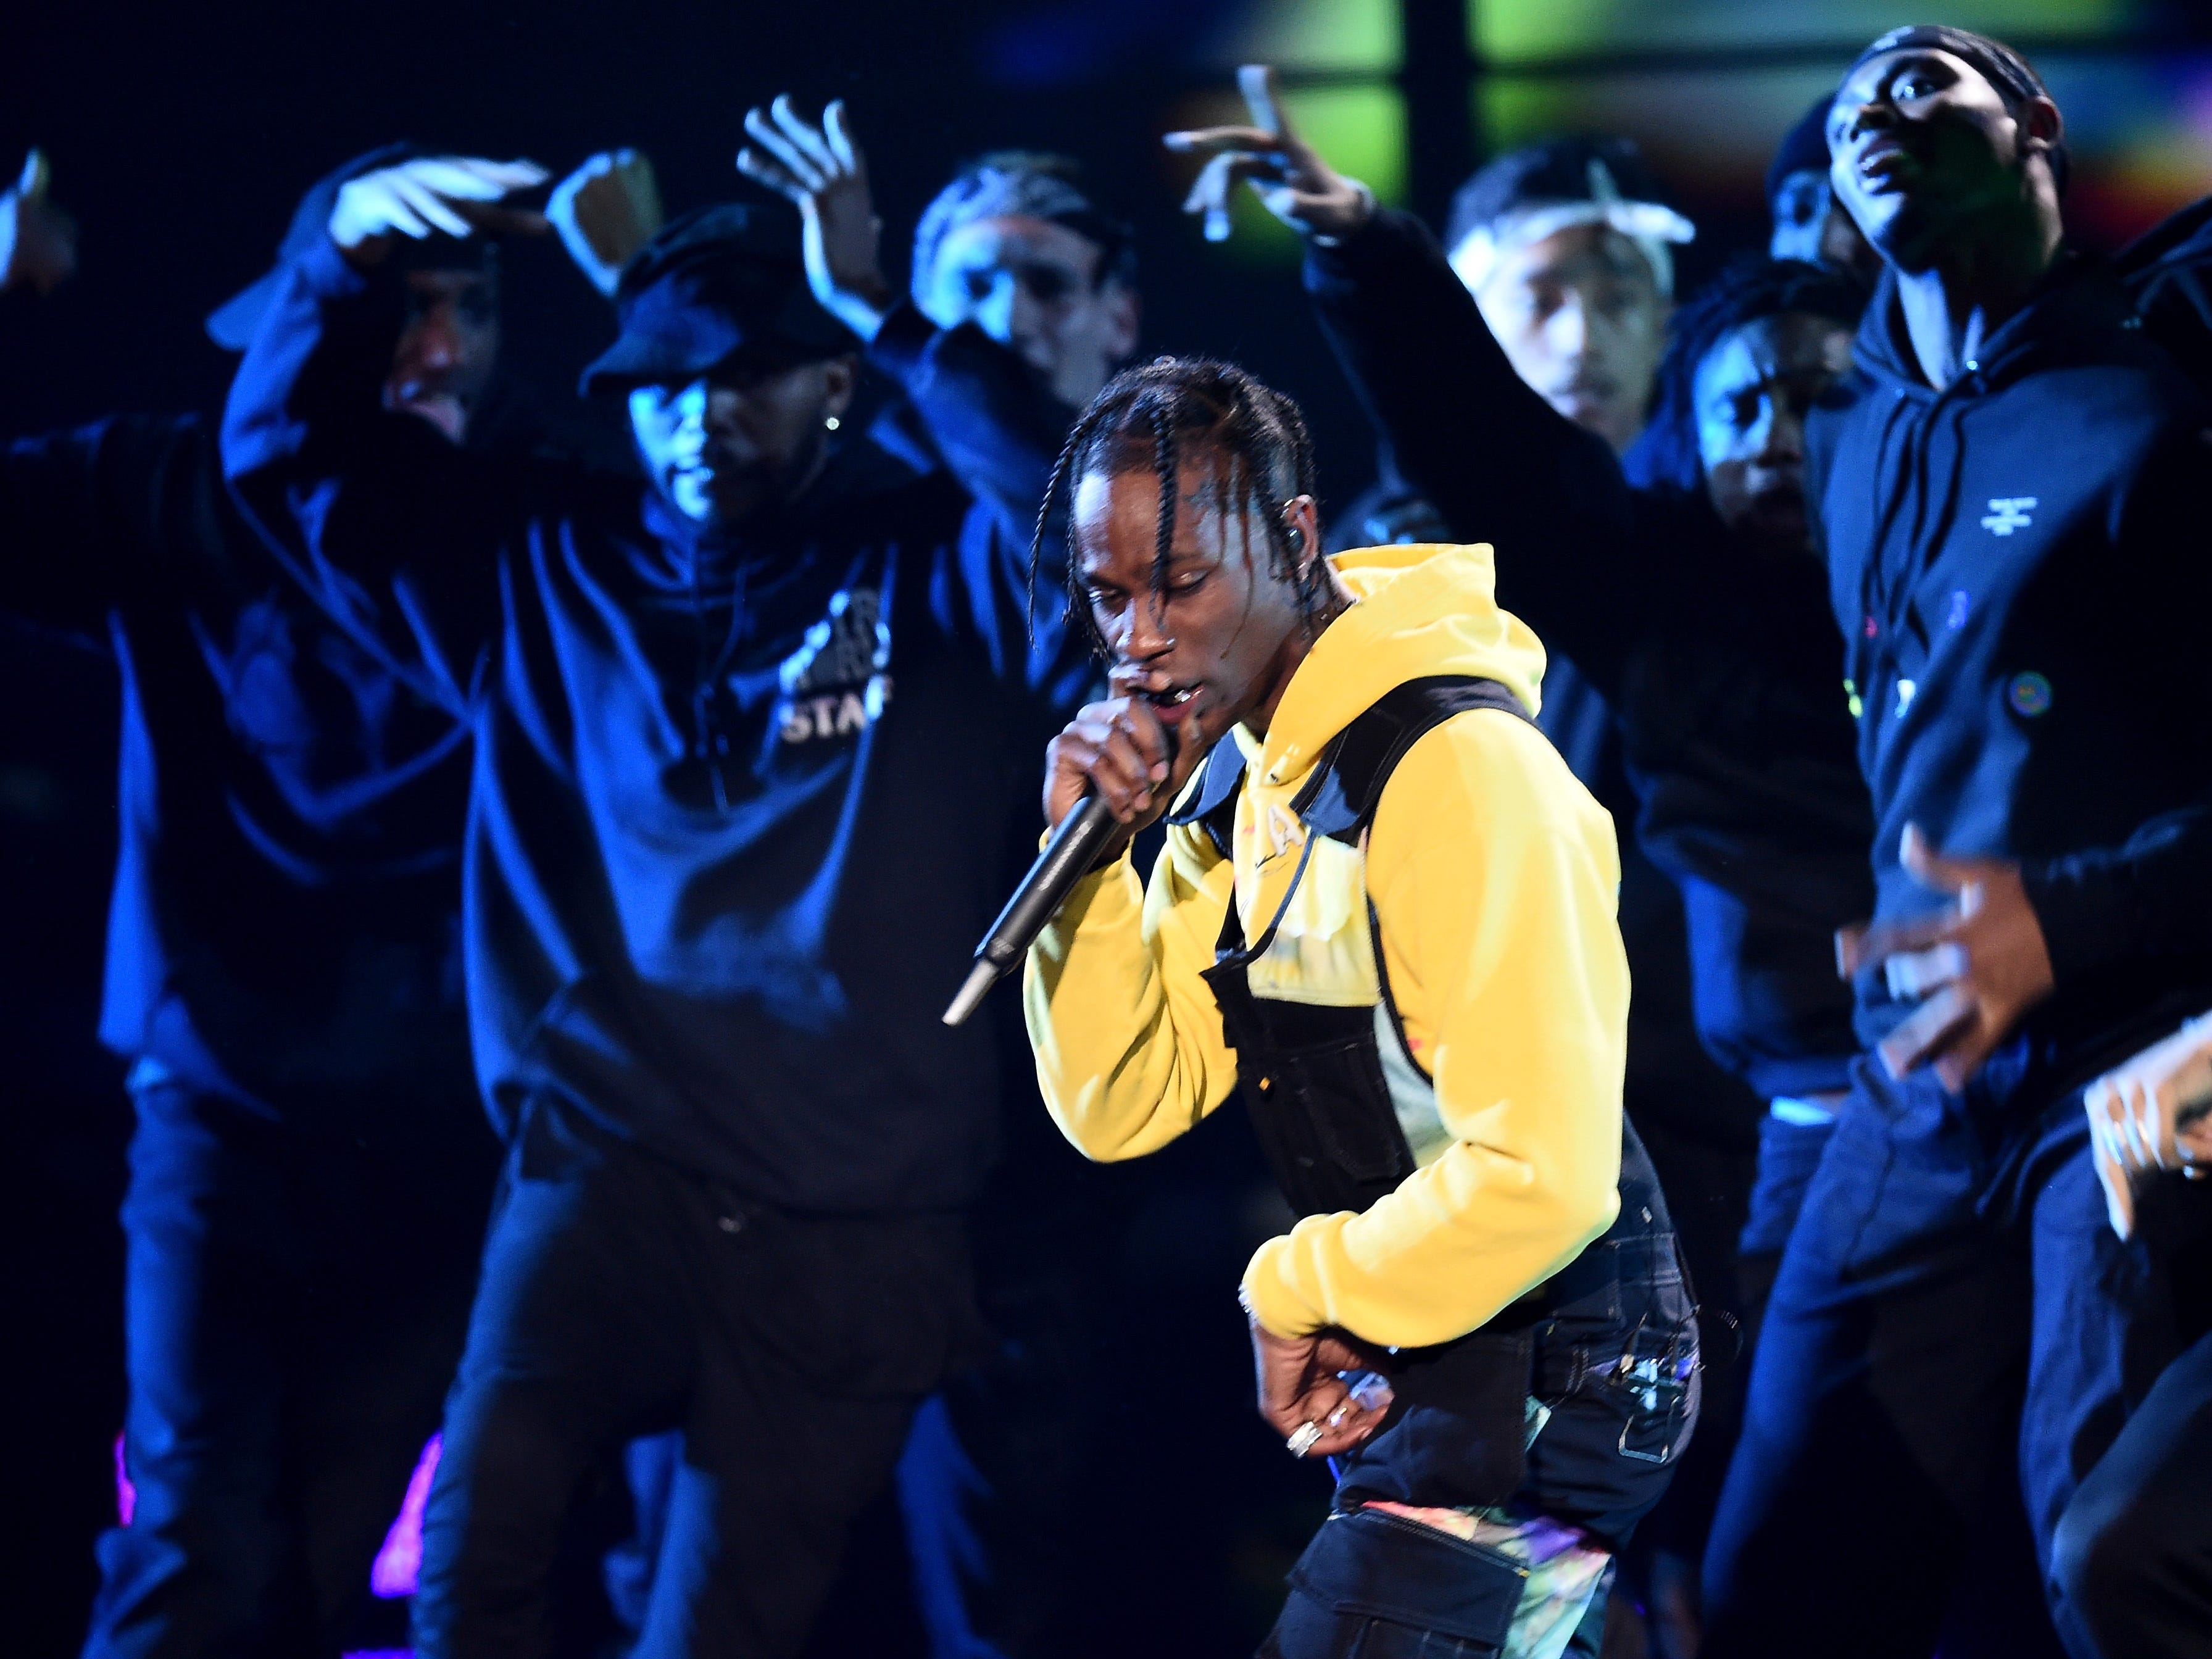 NEW YORK, NY - AUGUST 20:  Travis Scott performs onstage during the 2018 MTV Video Music Awards at Radio City Music Hall on August 20, 2018 in New York City.  (Photo by Michael Loccisano/Getty Images for MTV) ORG XMIT: 775210297 ORIG FILE ID: 1020392546